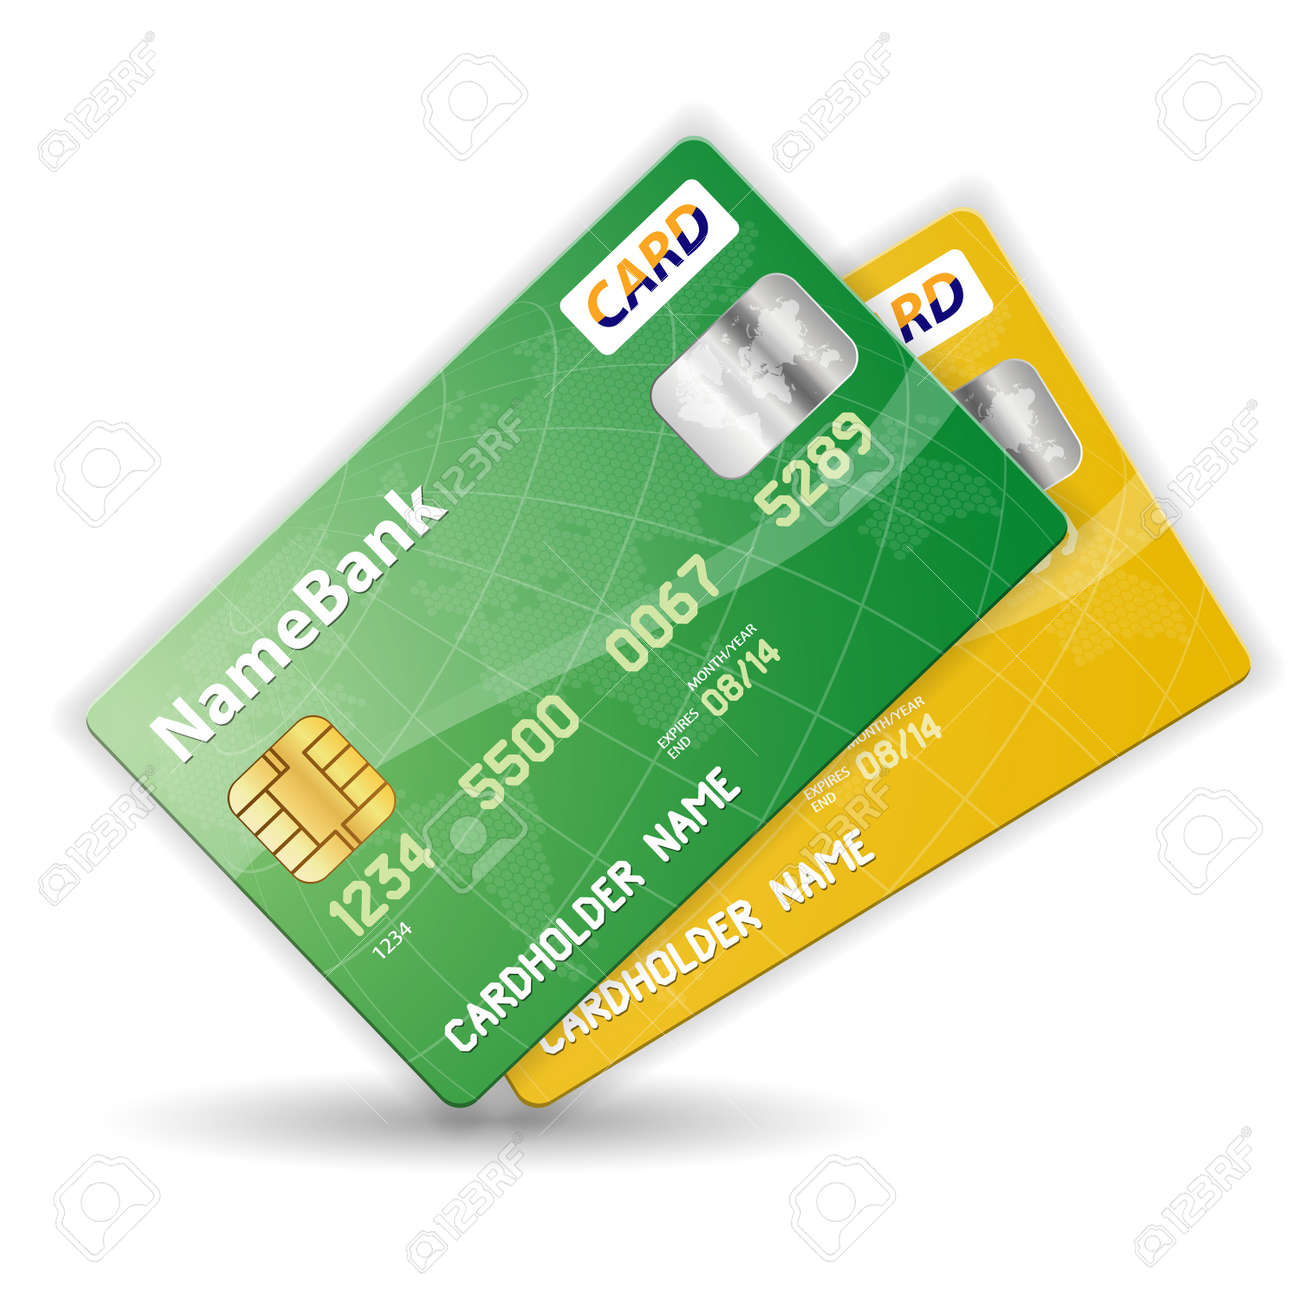 Set of Colorful Plastic Credit Cards, illustration Stock Vector - 12339291